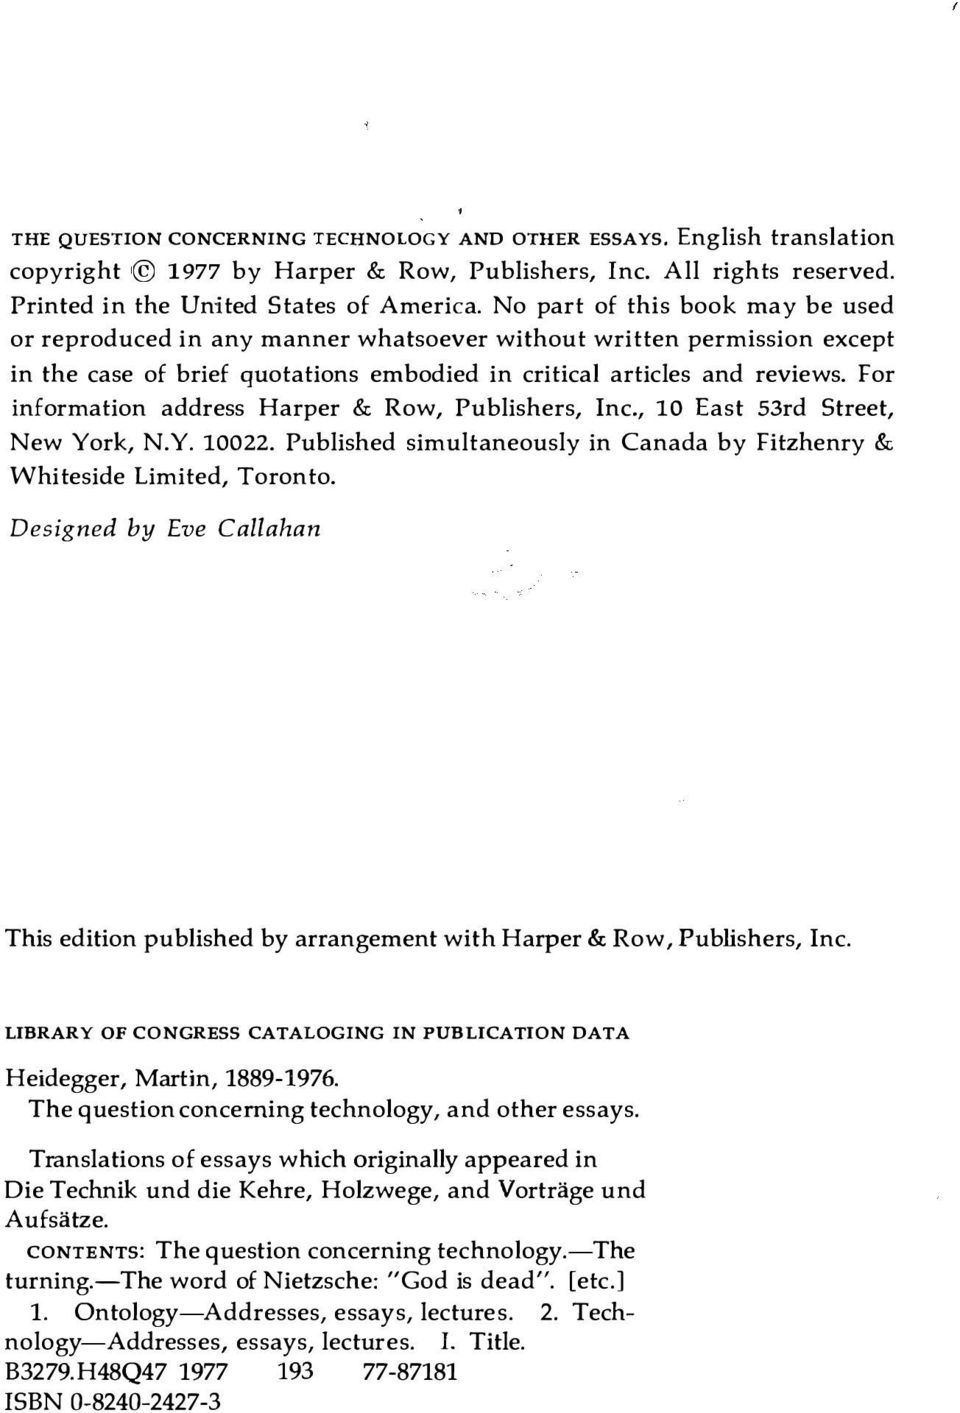 For information address Harper & Row, Publishers, Inc., 10 East 53rd Street, New York, N.Y. 10022. Published simultaneously in Canada by Fitzhenry & Whiteside Limited, Toronto.